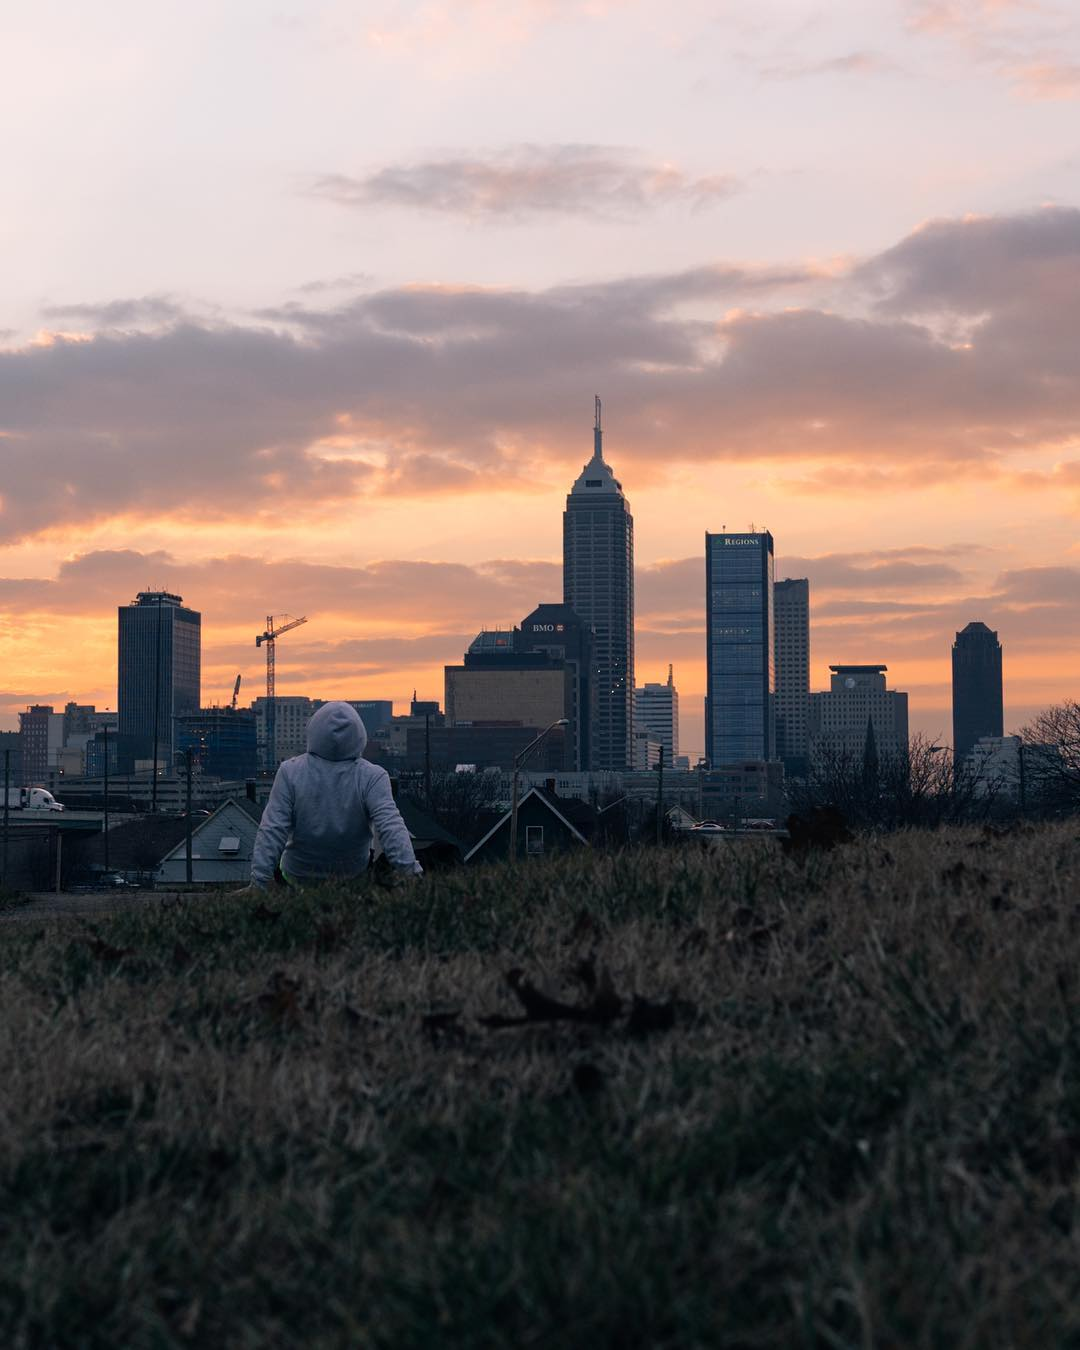 Signing off with my #localwanderer takeover of the best view to watch the sunset in Indy, Highland Park. Thank you #AlaskaAir for allowing me to showcase a small snippet of what Indy and Indiana has to offer.